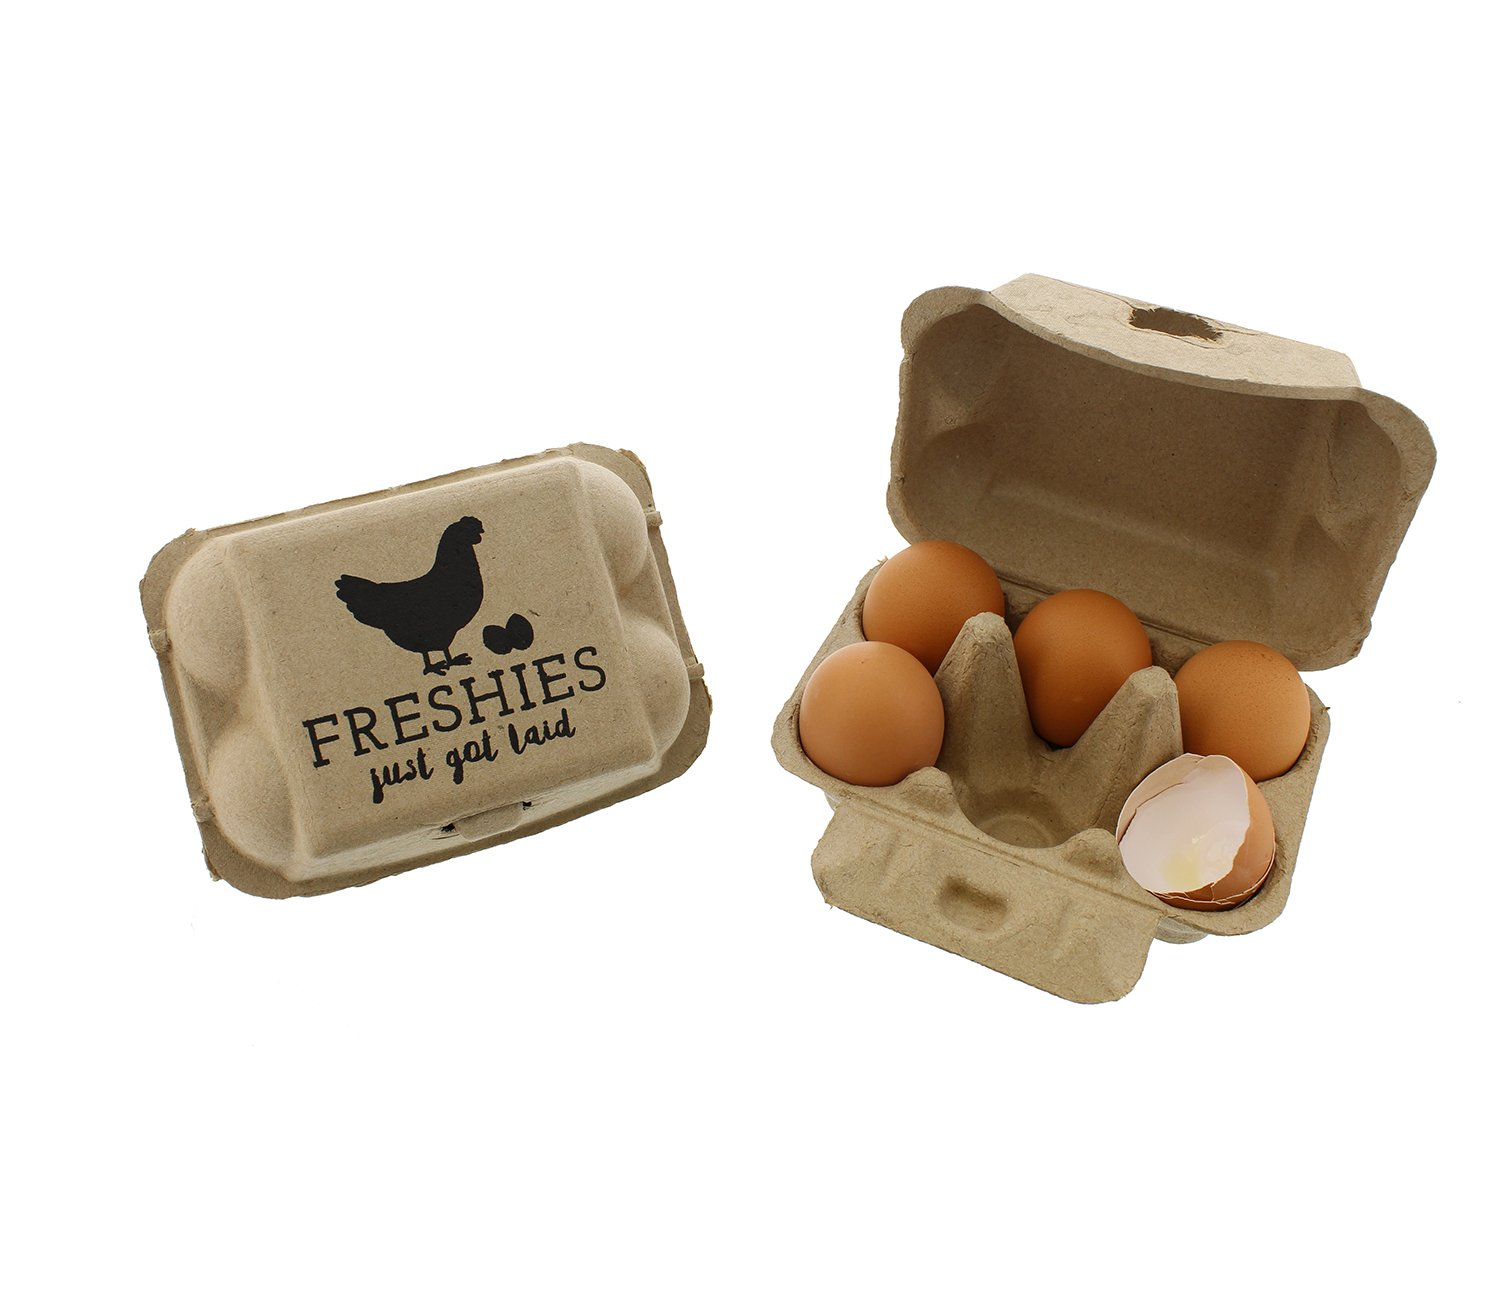 Rural365 Chicken Egg Cartons - Biodegradable Egg Carton 6 Cell Egg Holders, Farm Freshies Empty Egg Cartons, 20 Pack